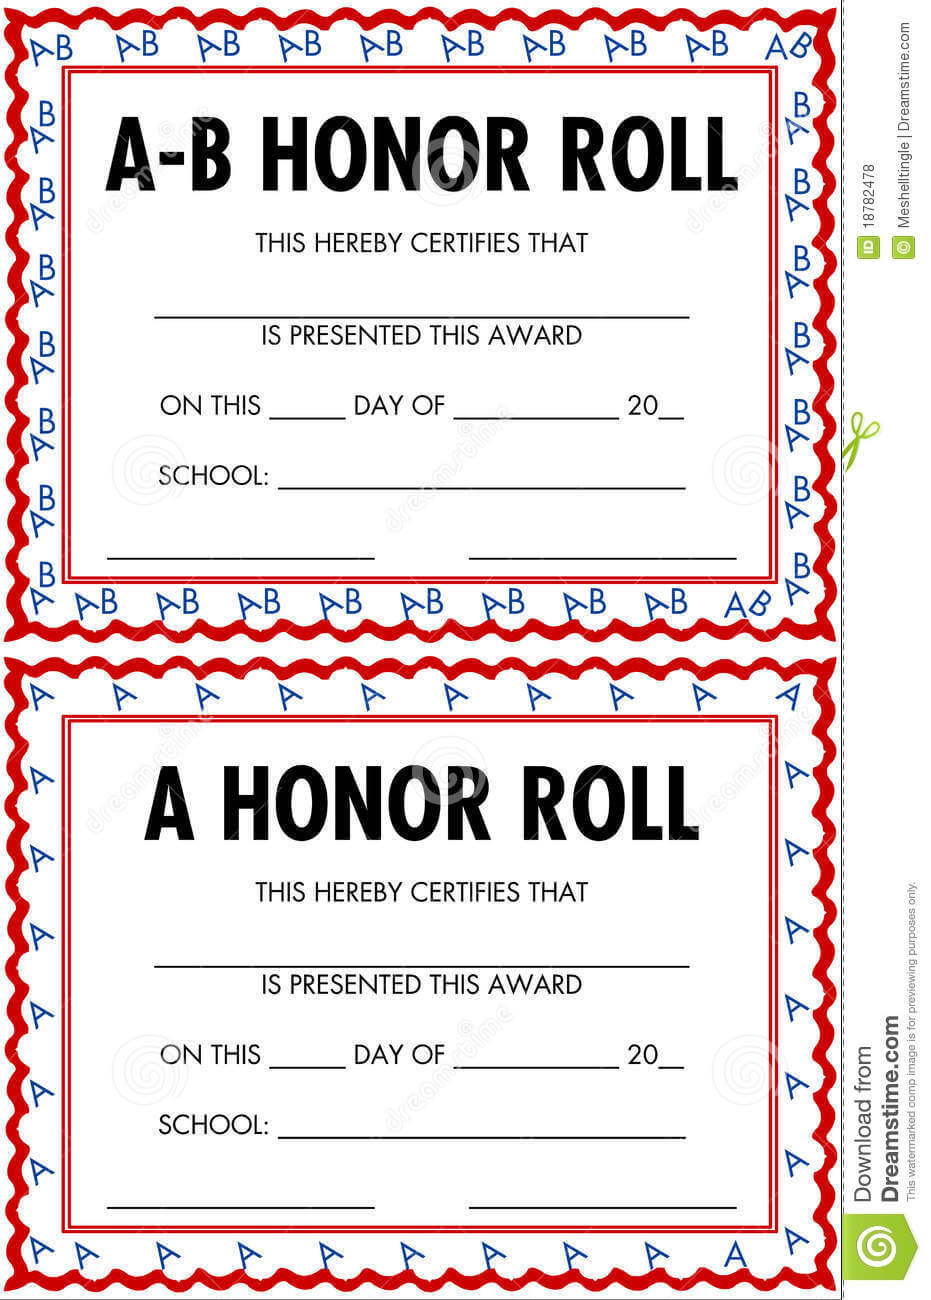 A/b Honor Roll Clipart Pertaining To Honor Roll Certificate Template